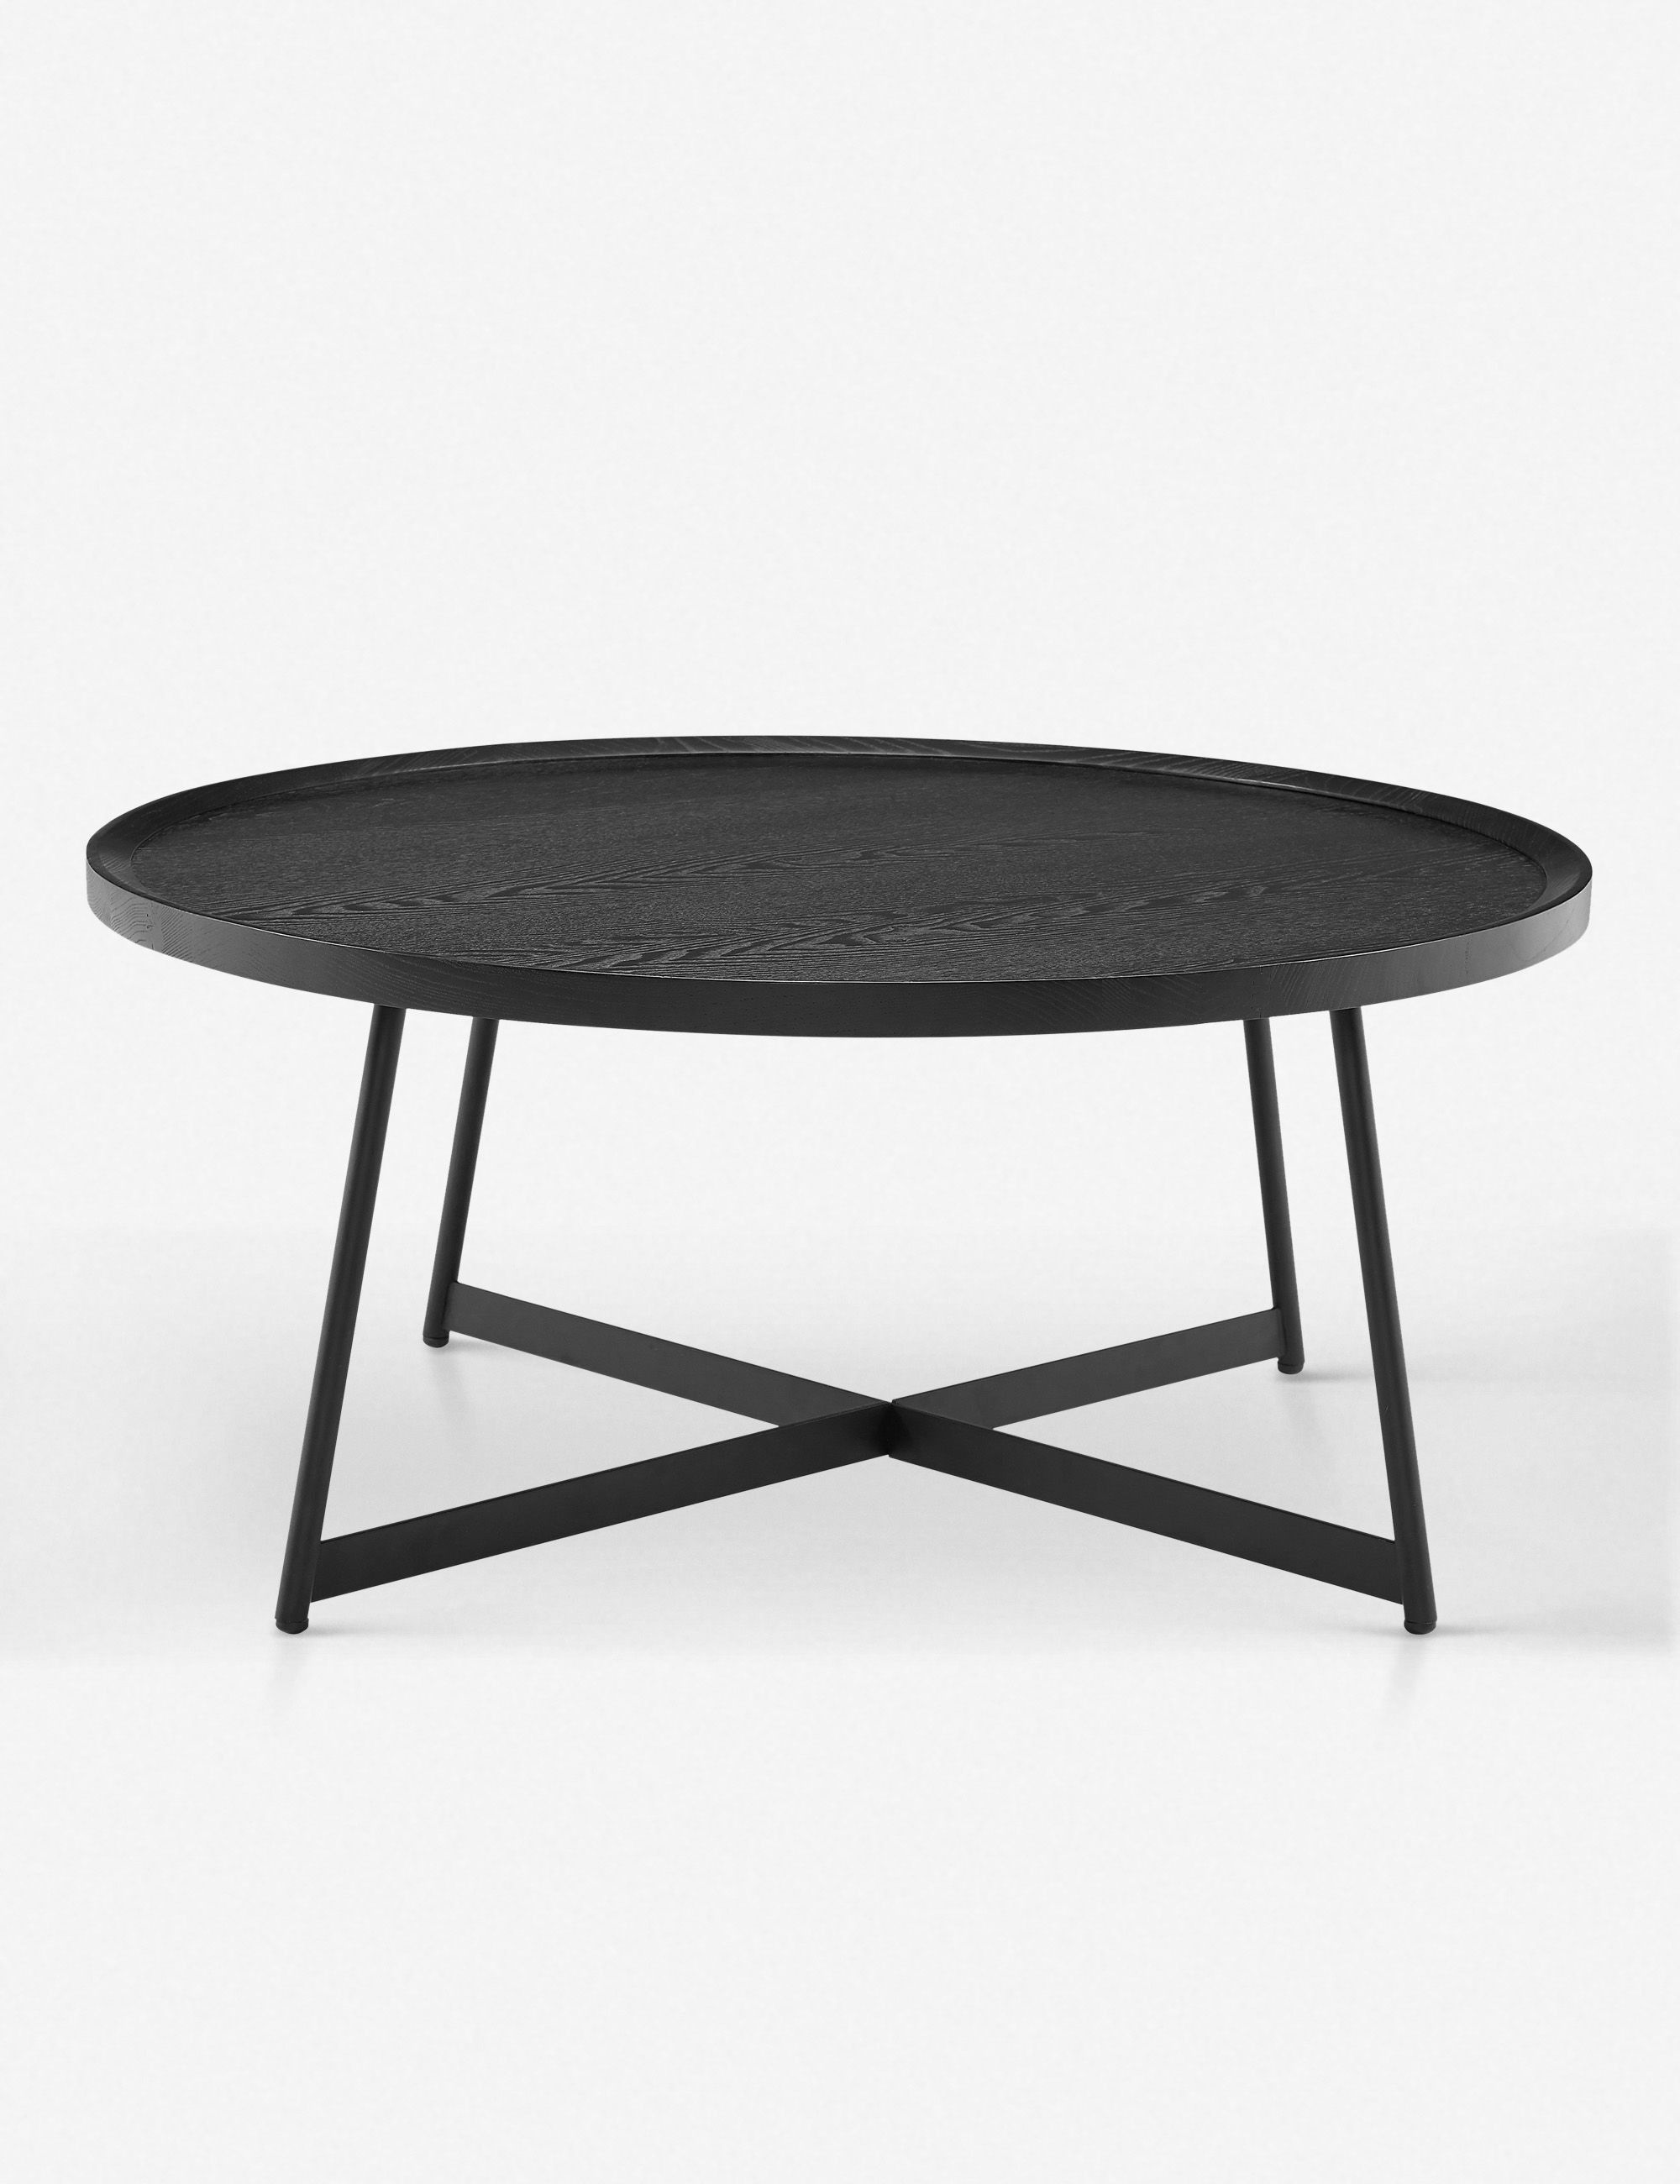 Gweneth Round Coffee Table Black Ash In 2020 Round Coffee Table Coffee Table Black Coffee Tables [ 2600 x 2000 Pixel ]